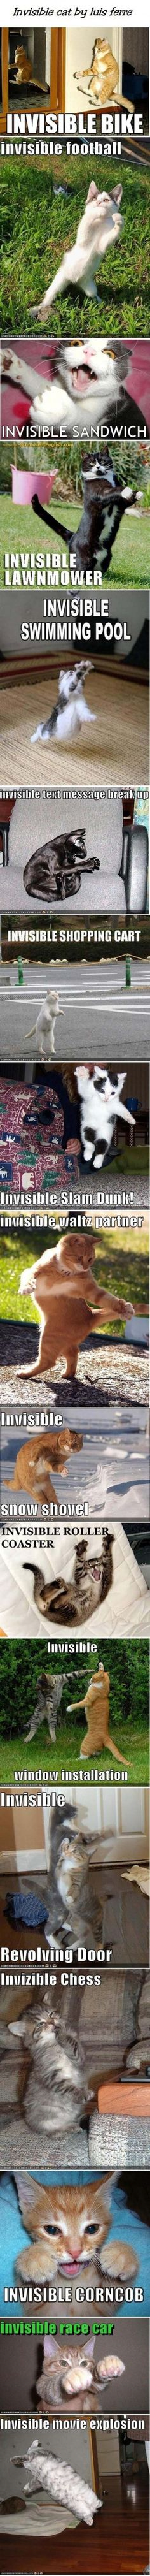 Funny Animals 163 (23 pict) | Funny pictures